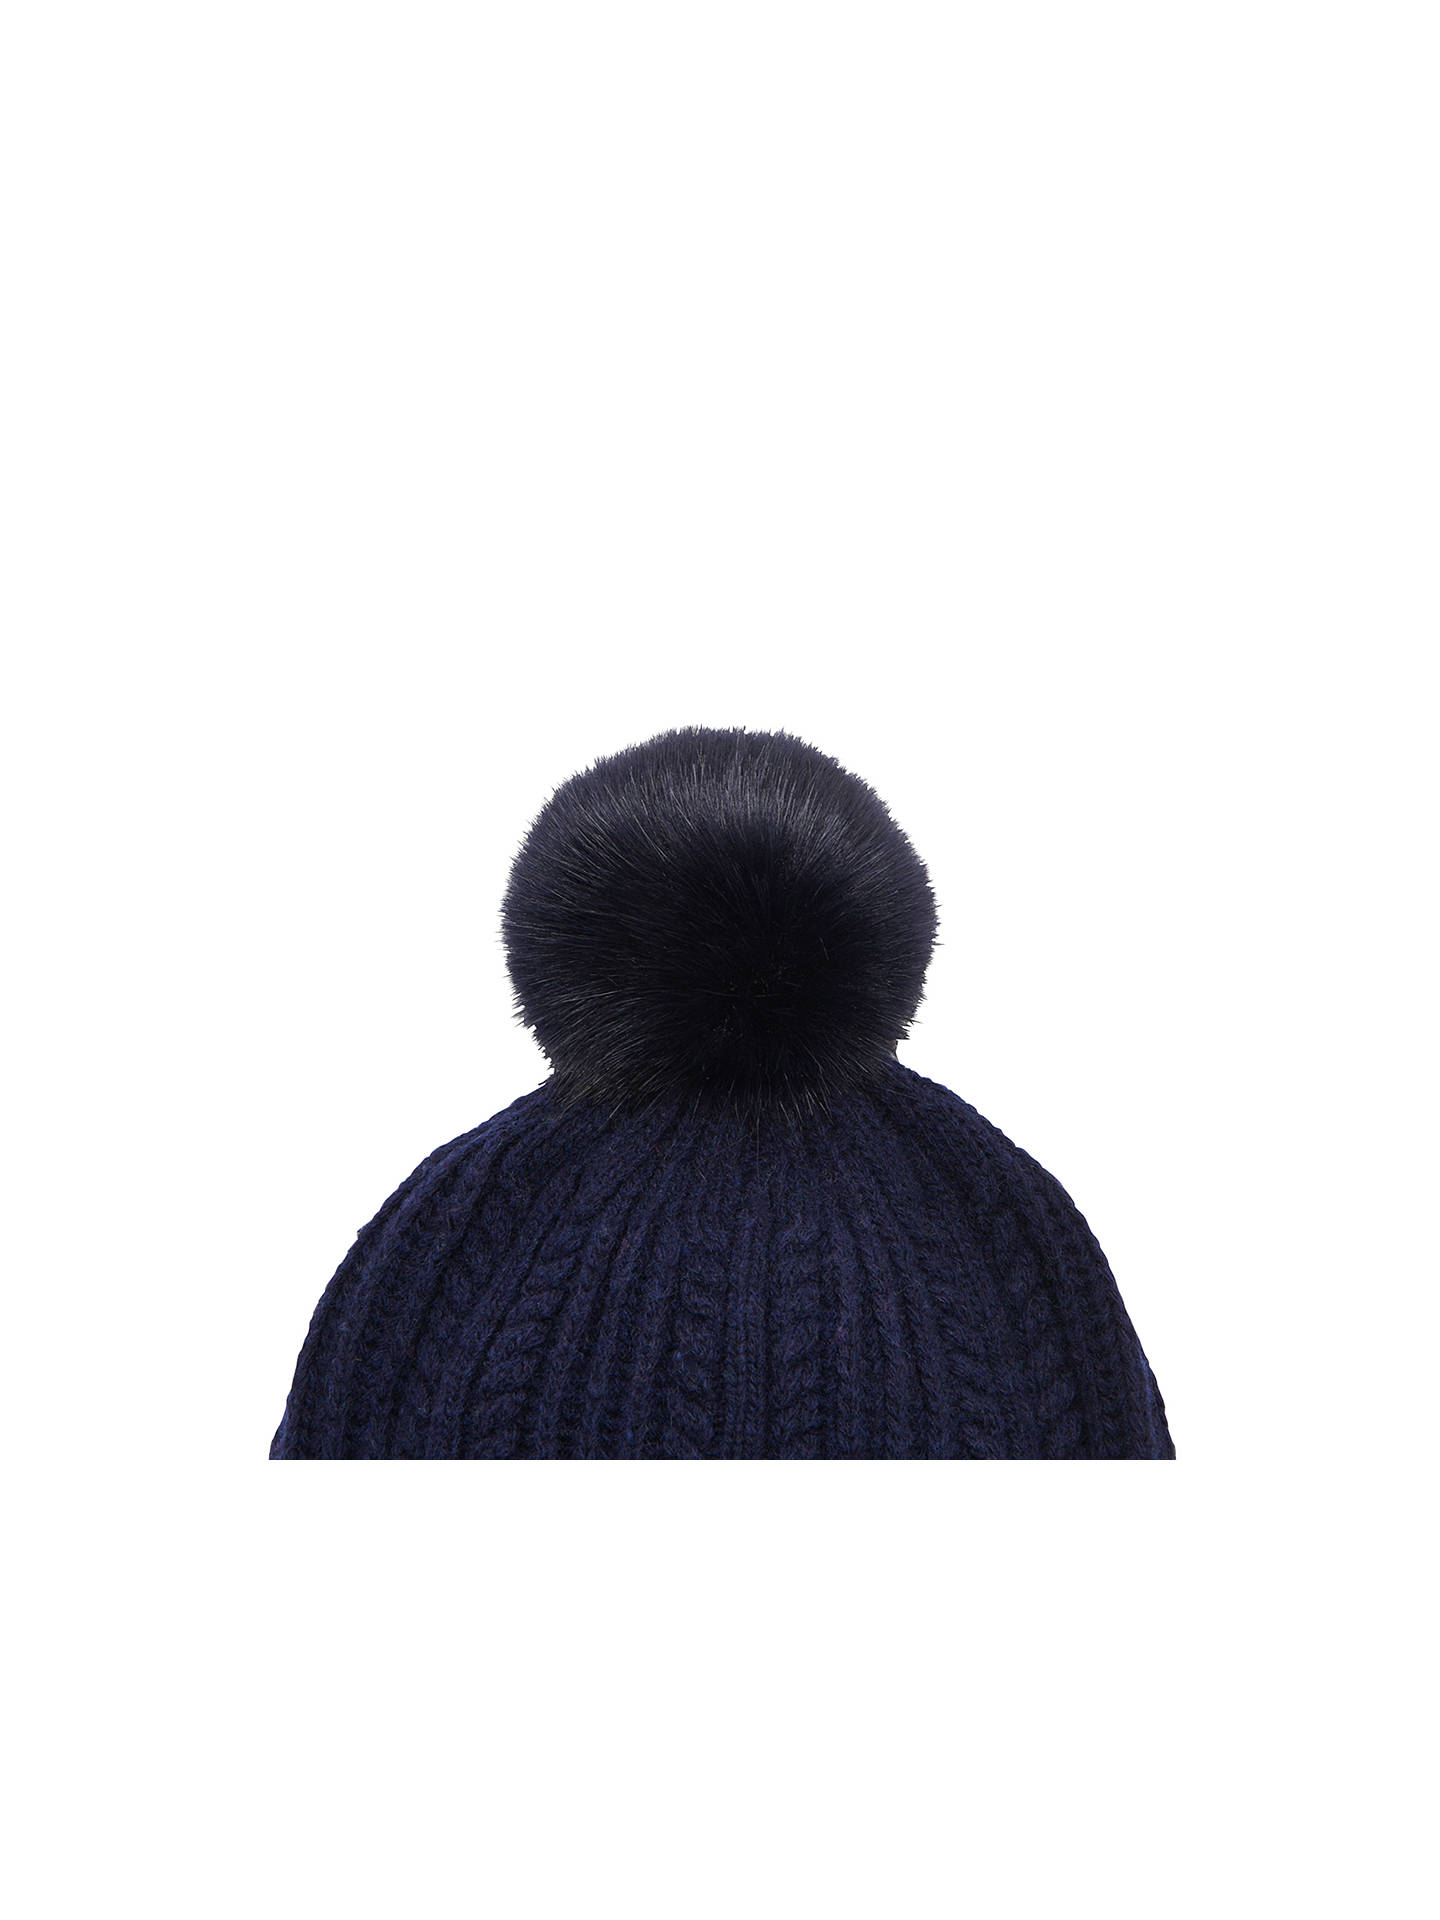 8732dff729b46 Joules Women s Bobble Hat at John Lewis   Partners